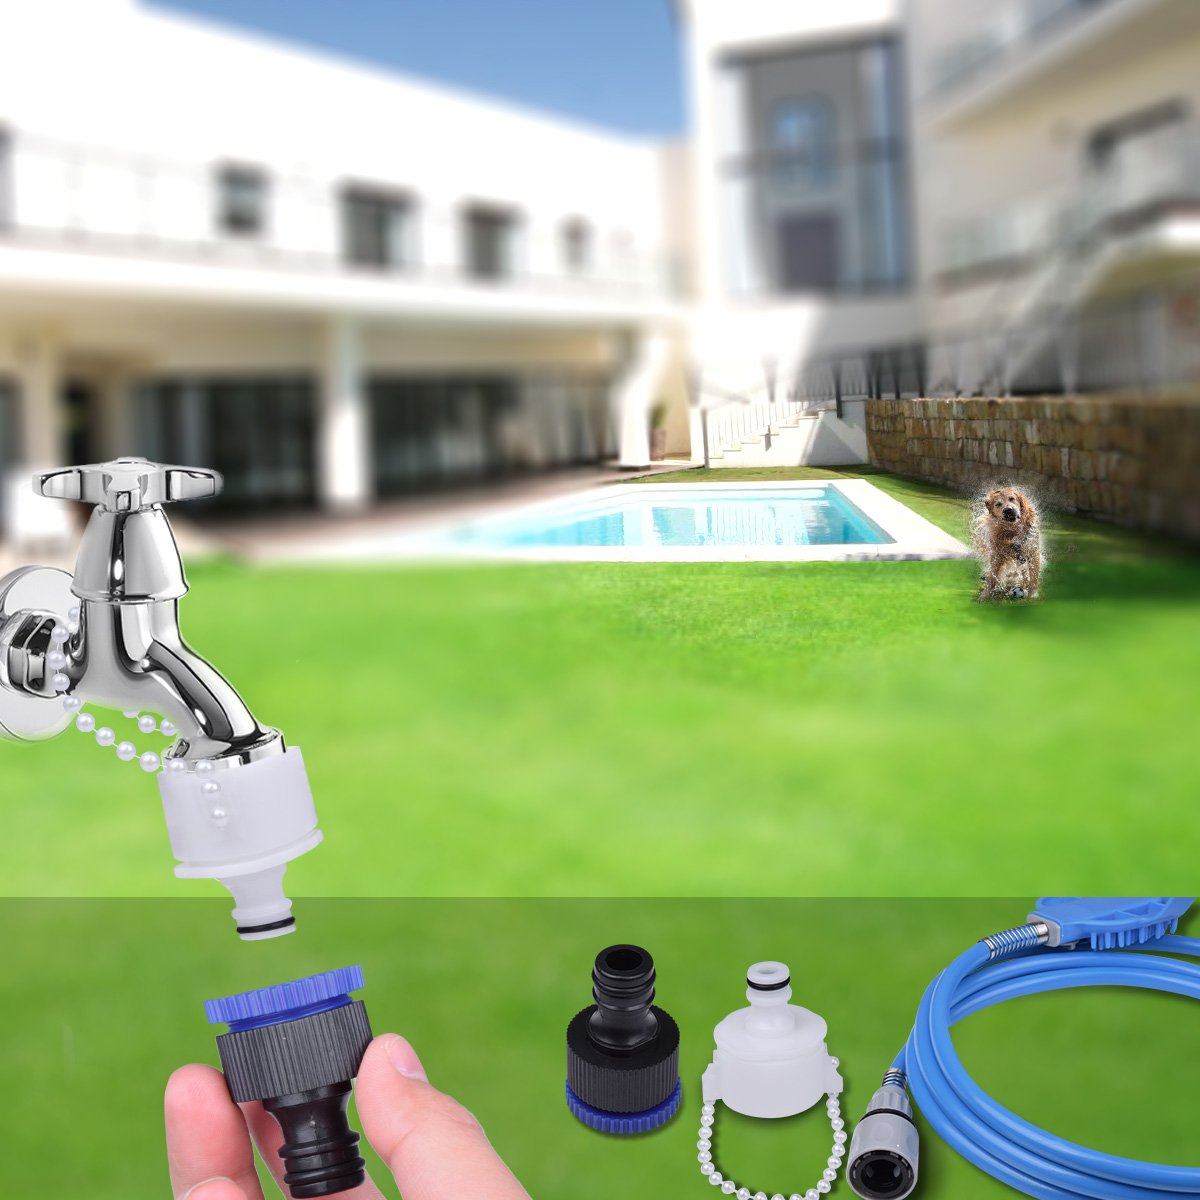 Ducking Pet Shower Sprayer with Brush, Multi-Functional Pet Bathing Tool with ON/OFF Switch for Dog, Cat, Horse Outdoor Grooming, Adjustable handheld Massage with 8 Foot Hose and 2 Hose Adapte by Ducking (Image #4)